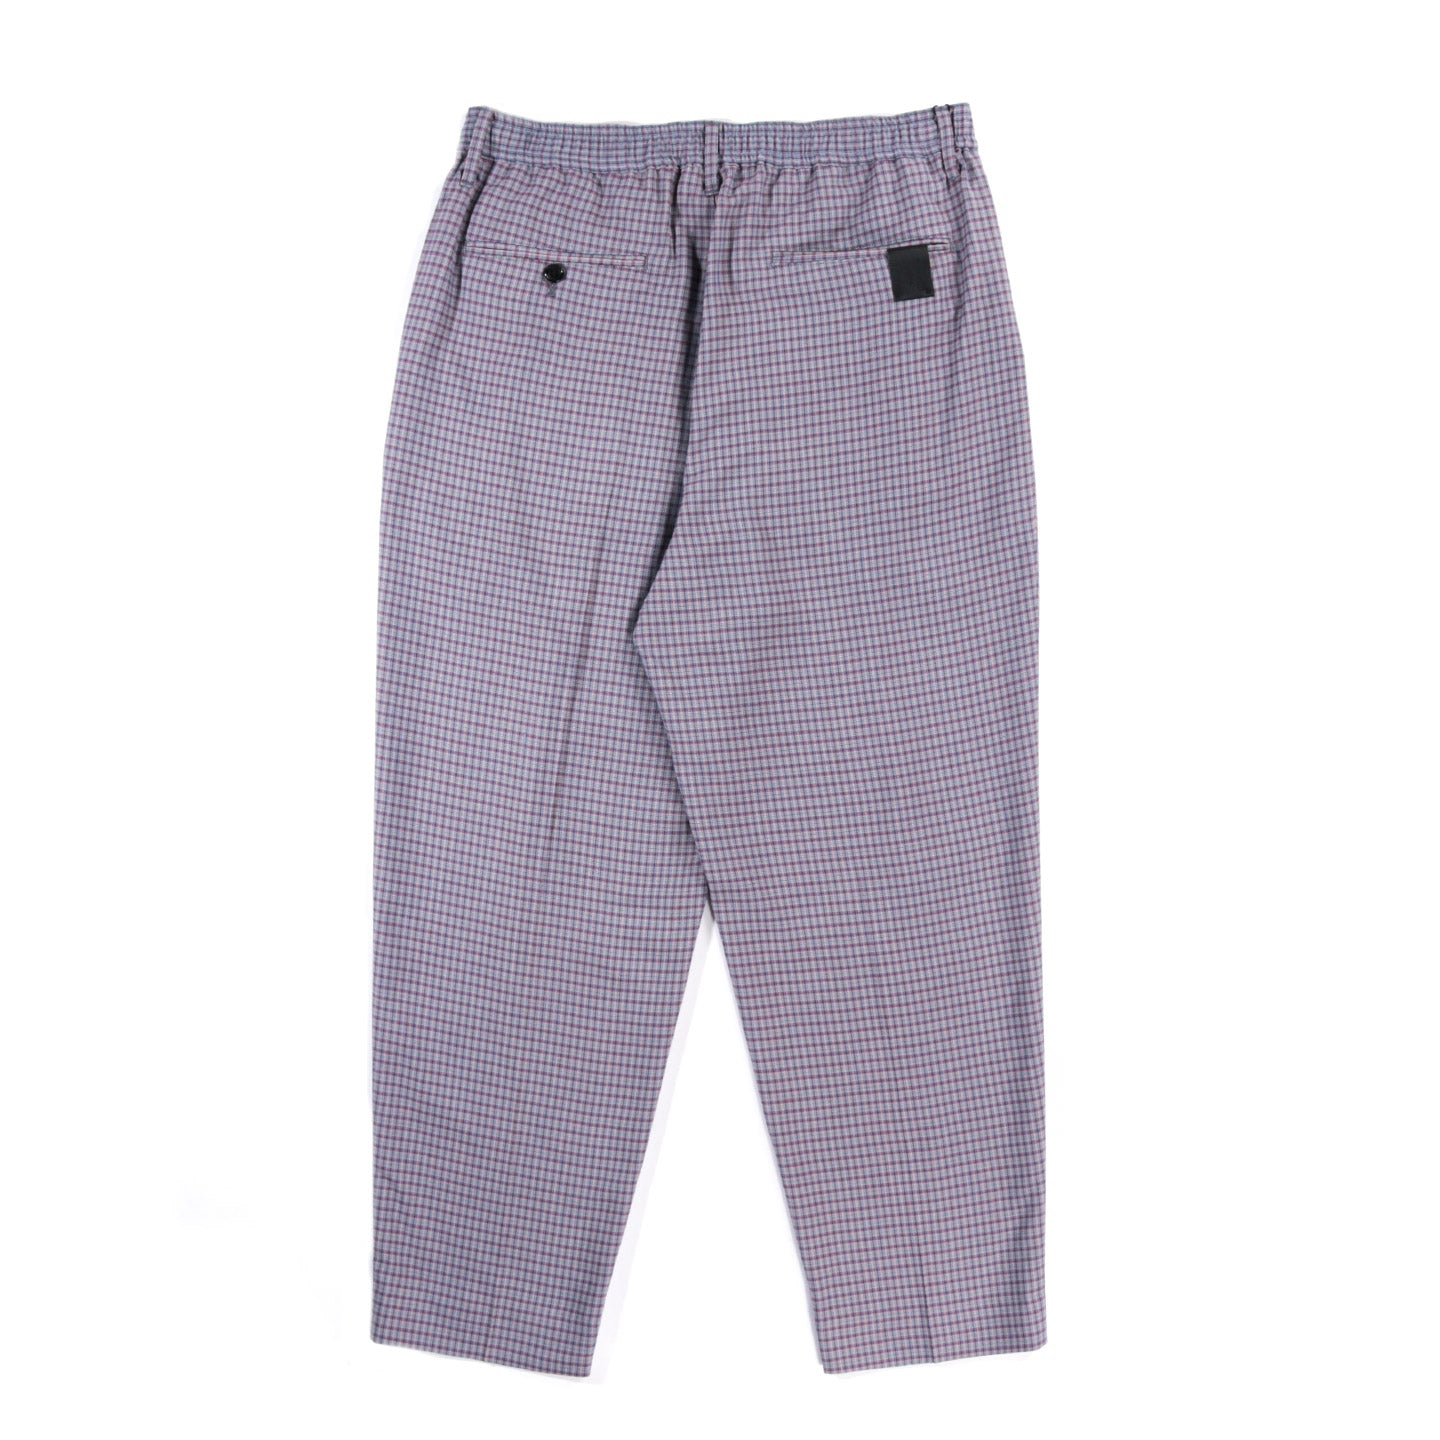 N.HOOLYWOOD 2211-PT07 EASY PANTS RED CHECK